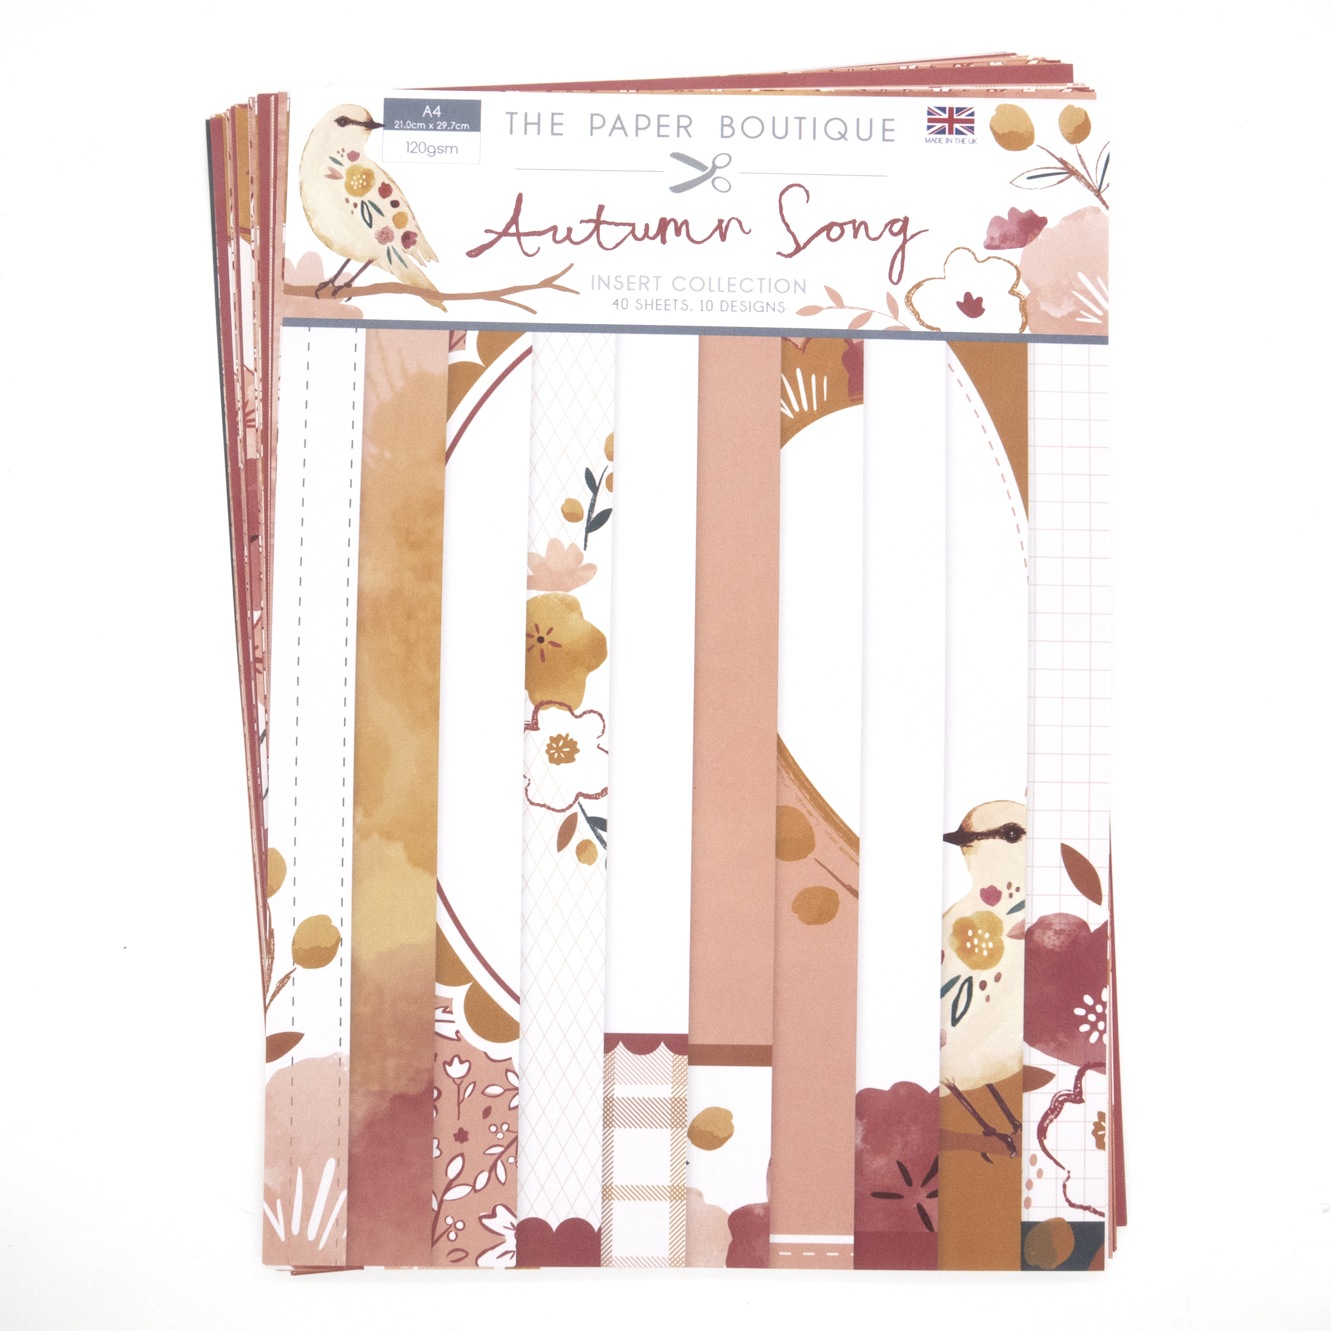 The Paper Boutique Autumn Song Insert Collection